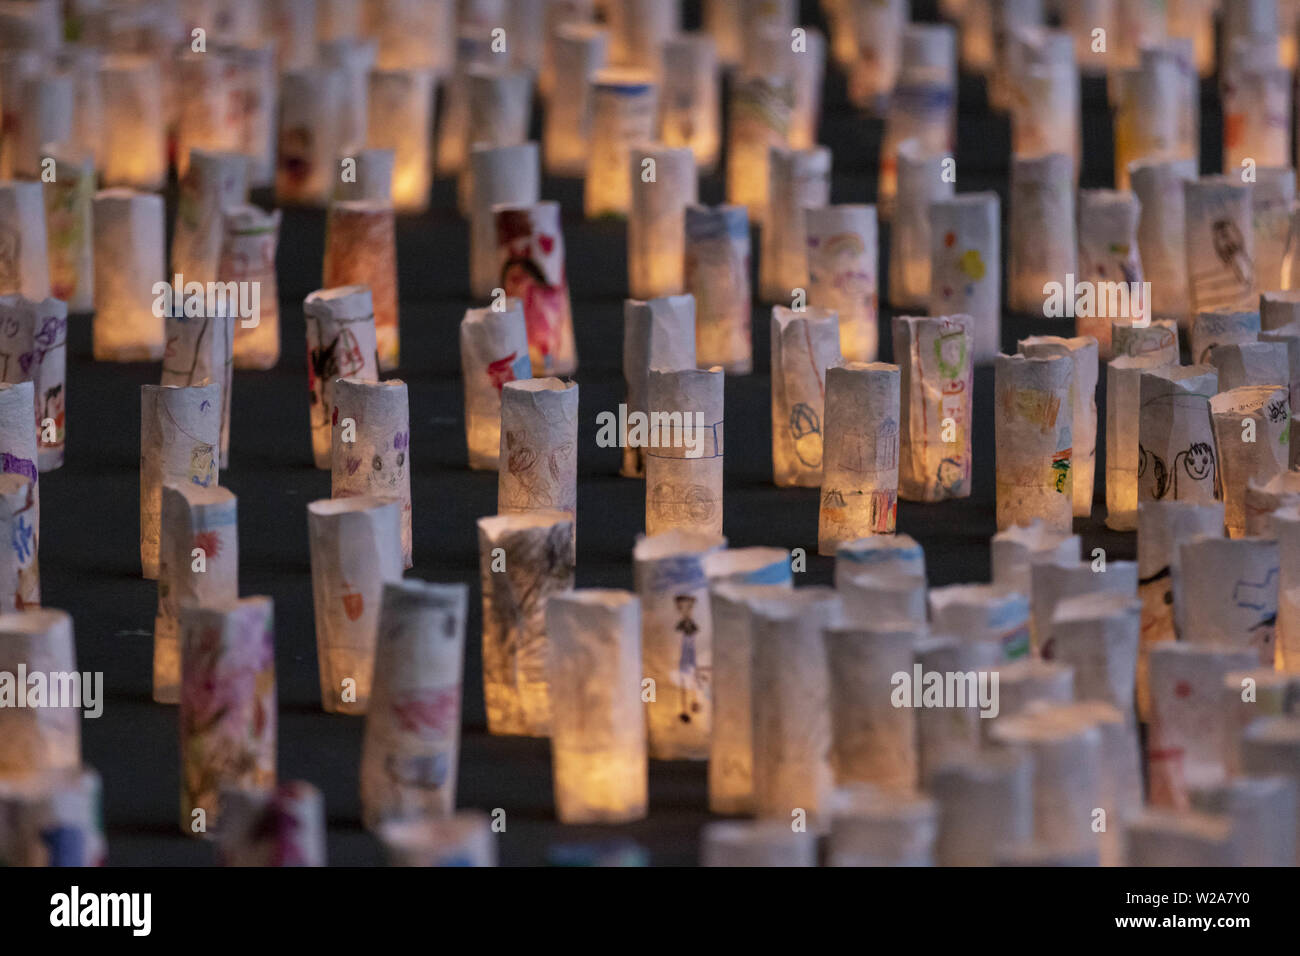 Tokyo, Japan. 7th July, 2019. Lanterns are on display as part of the Tanabata festival at Zojoji Temple. Every year, people write their wishes on colorful papers (Tanzaku) to hang it on bamboo branches as a tradition of the Tanabata Festival. The annual celebration commemorates the legend of two lovers separated by the Milky Way who only meet once a year on the seventh day of the seventh month. The festival has been held since the Edo era. Credit: Rodrigo Reyes Marin/ZUMA Wire/Alamy Live News - Stock Image